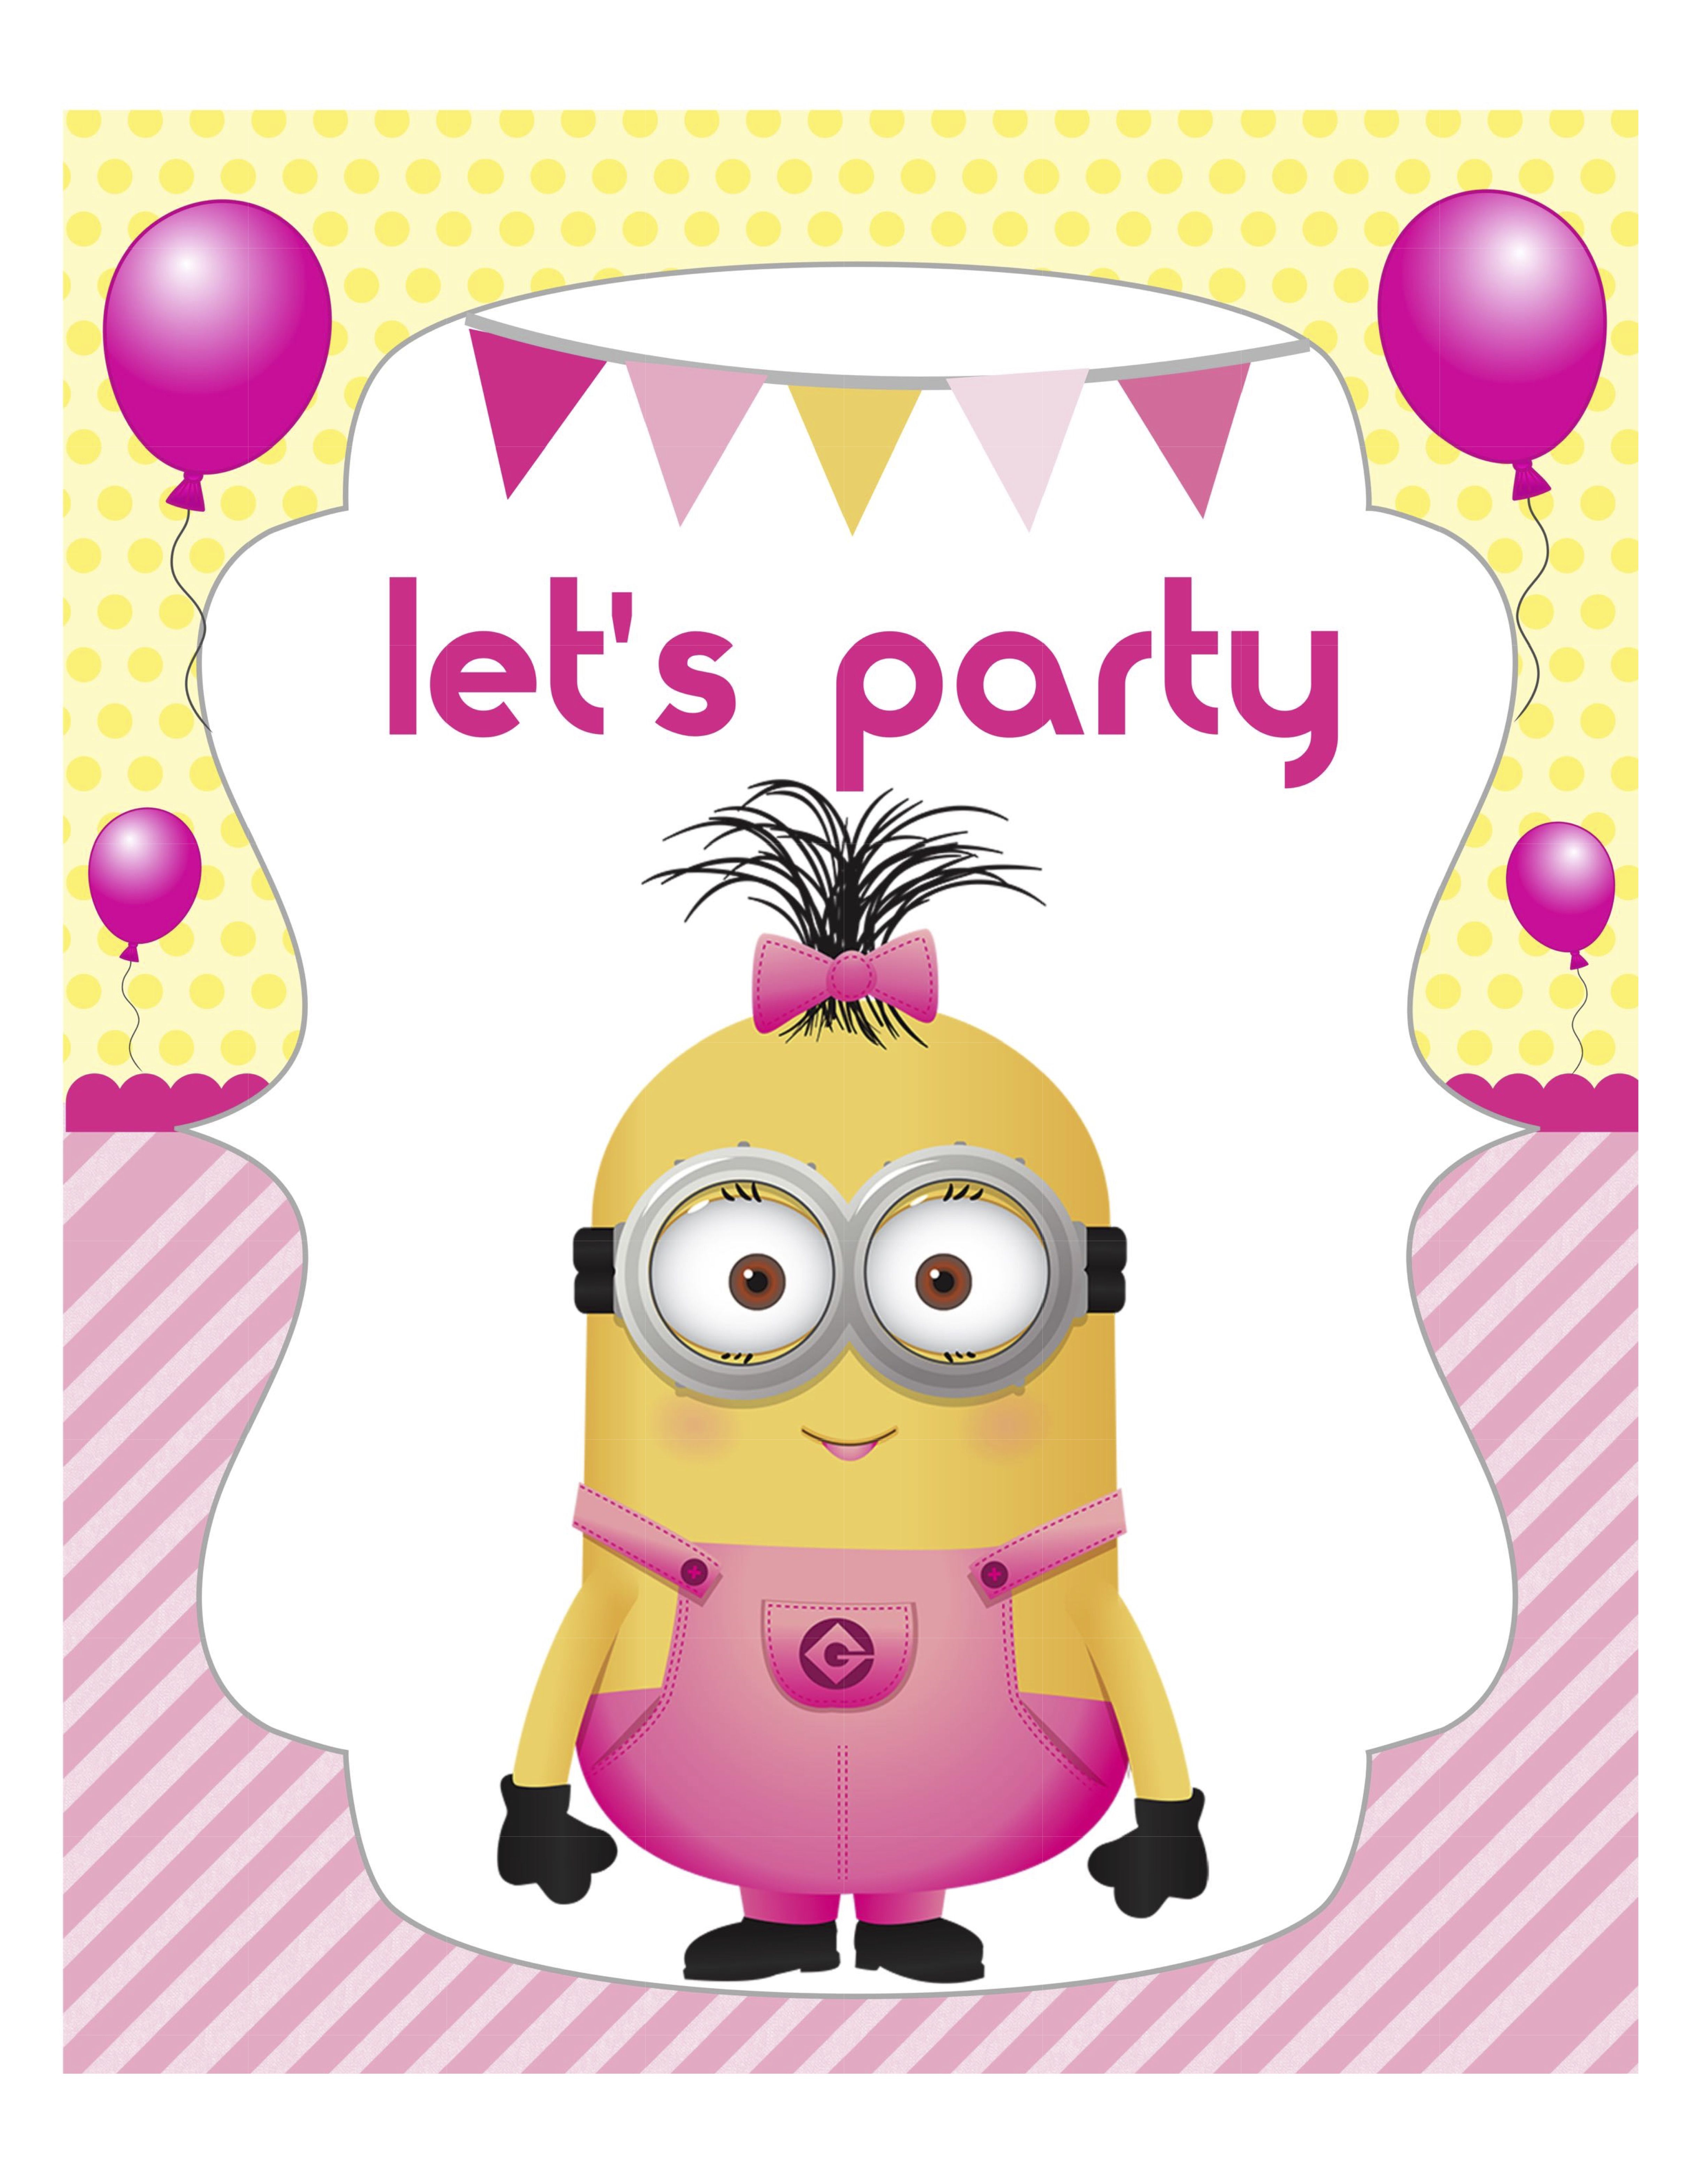 Party Sign Minion Girl With Images Minion Girl Party Minion Party